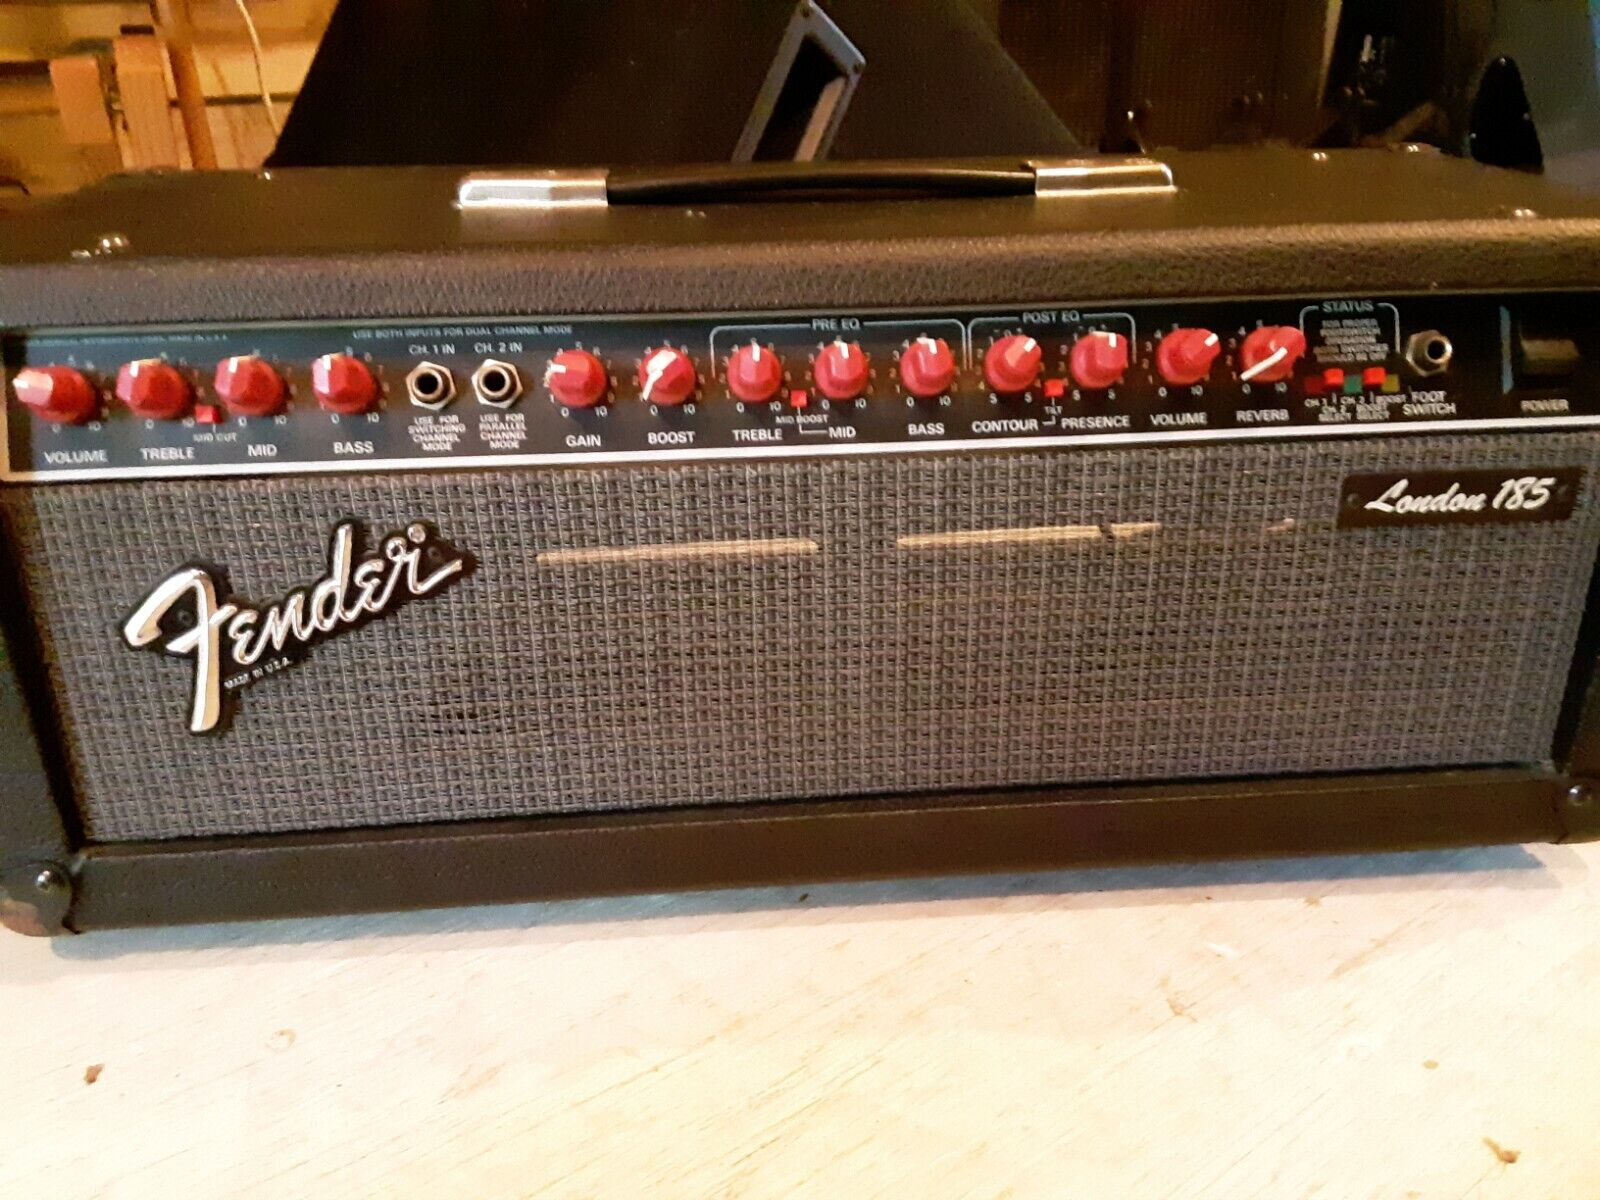 Fender London 185 solid state head amp, excellent condition. Buy it now for 380.00